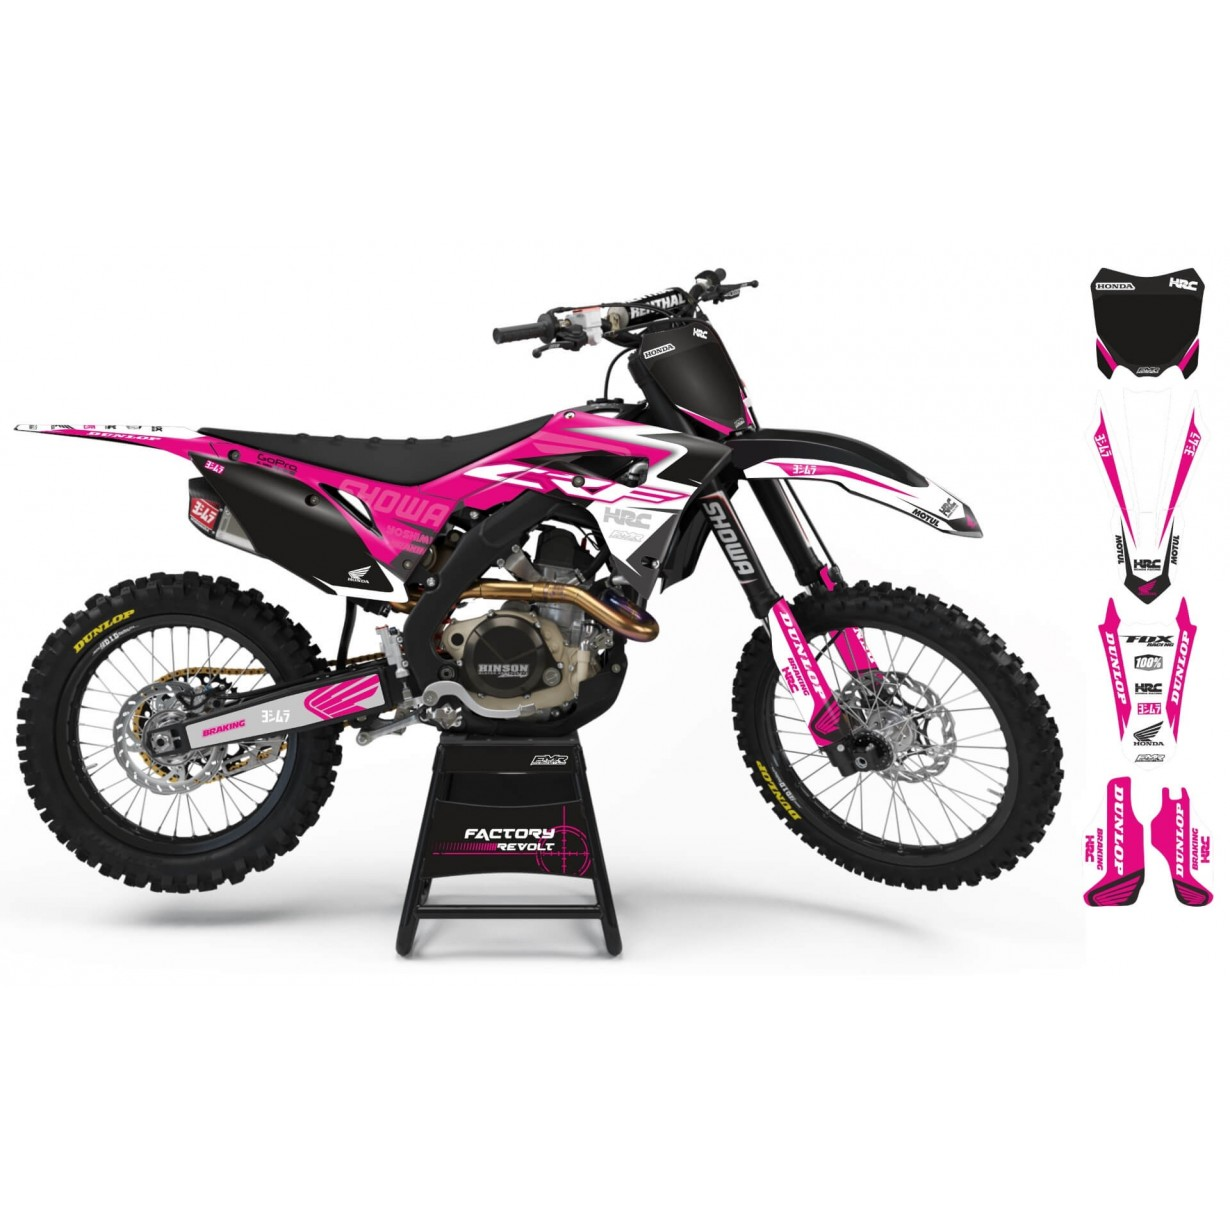 Kit déco Perso HONDA Factory Revolt A26A2 white/pink